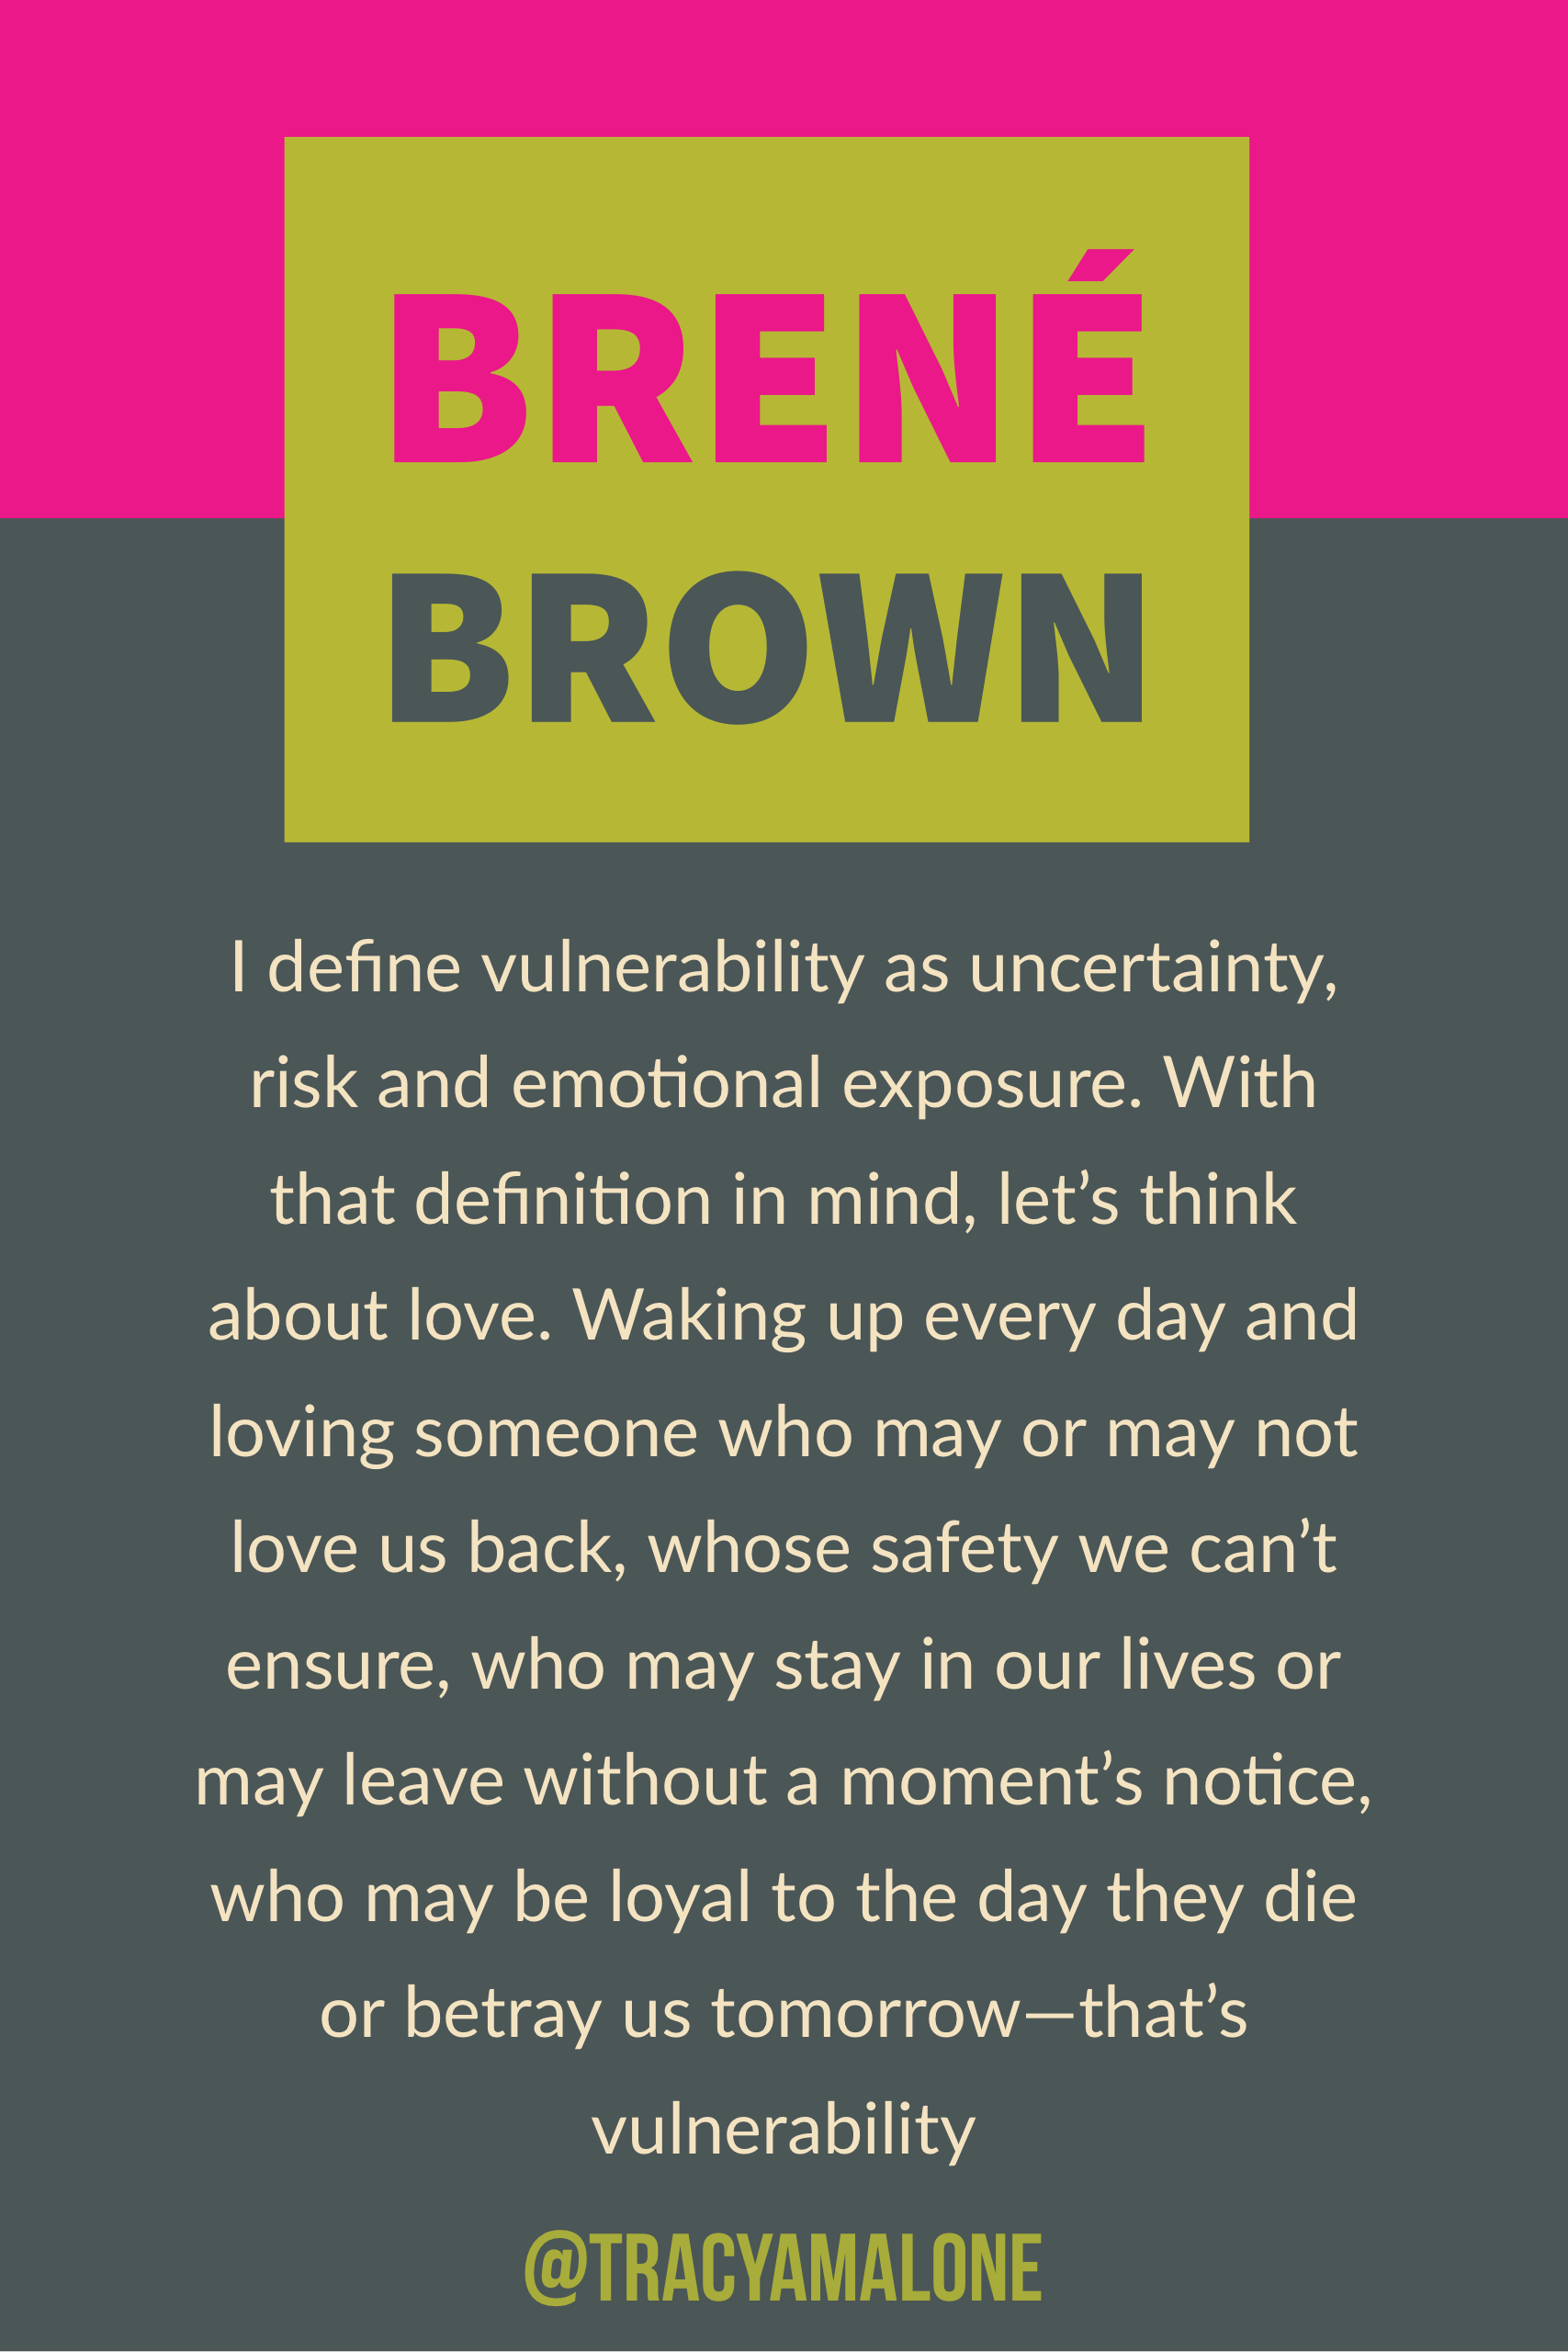 i define vulnerability as uncertainty risk and emotional exposure